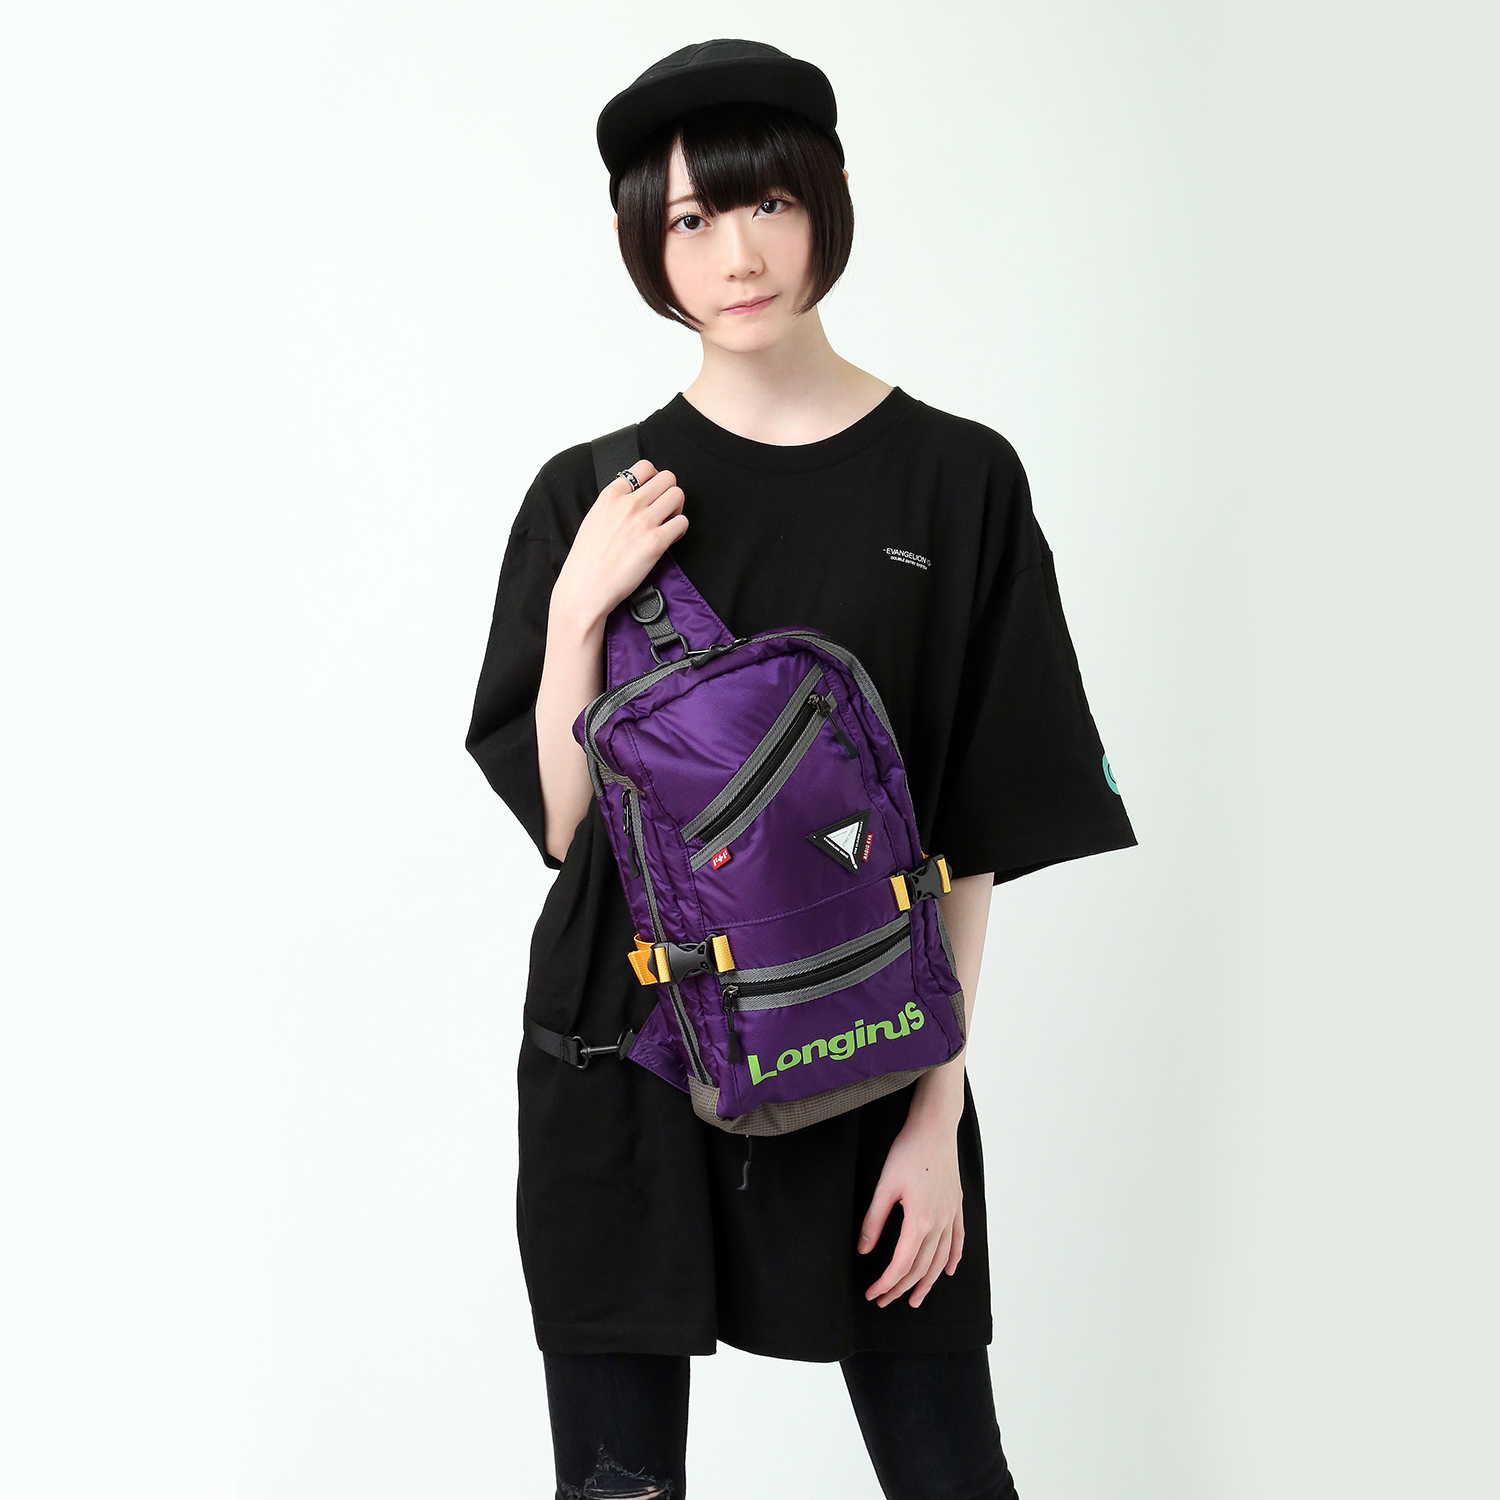 EVANGELION ABOVE BODY BAG by FIRE FIRST (EVA-13 MDOEL)